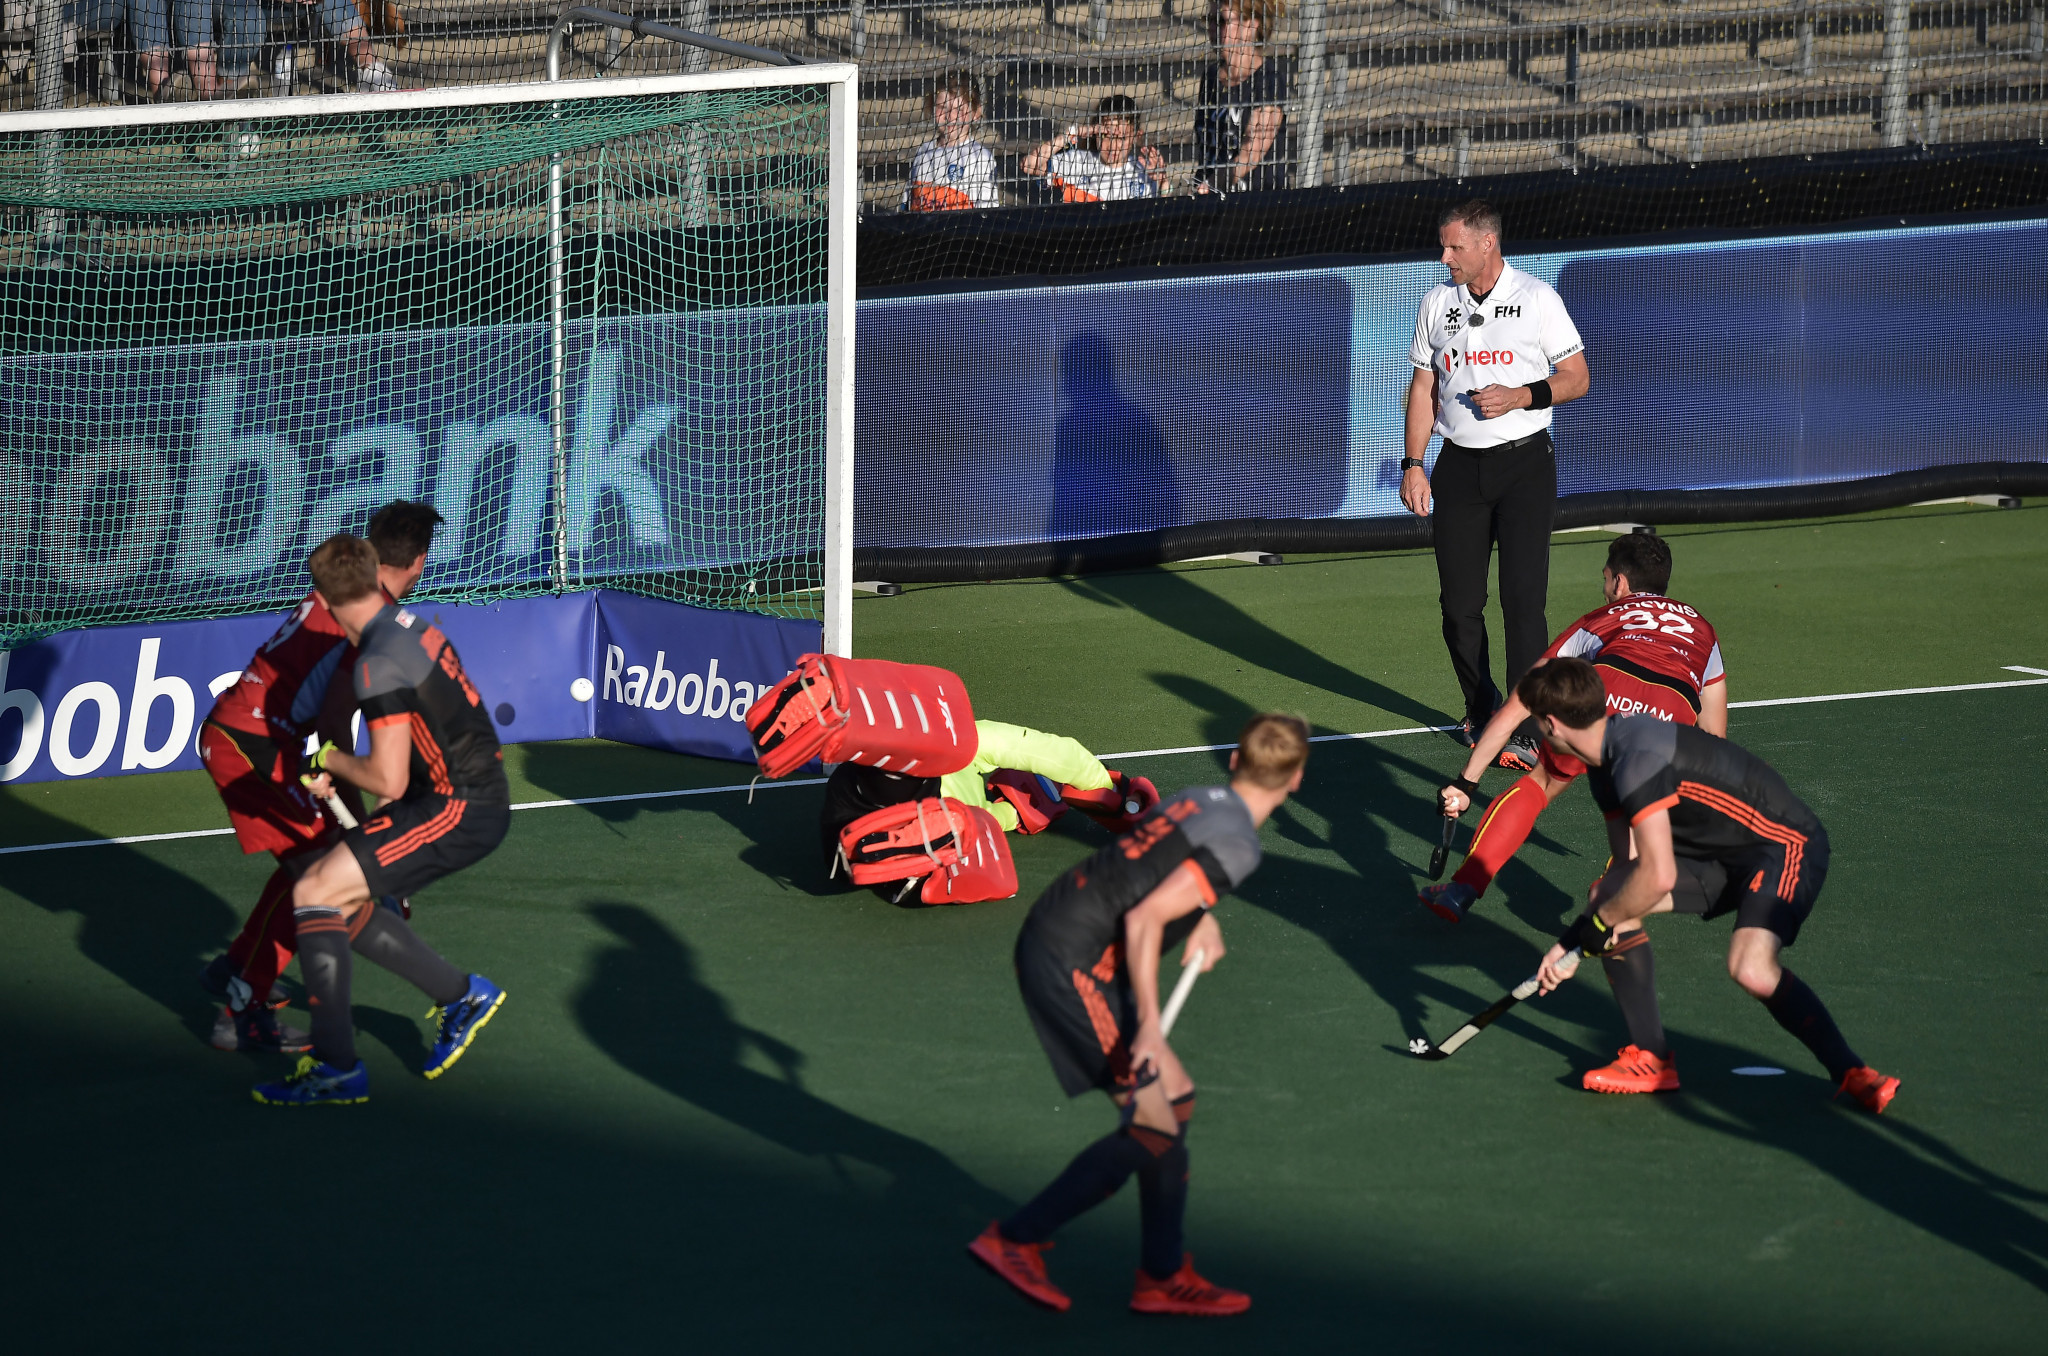 Belgium to meet Australia in men's final of FIH Pro League